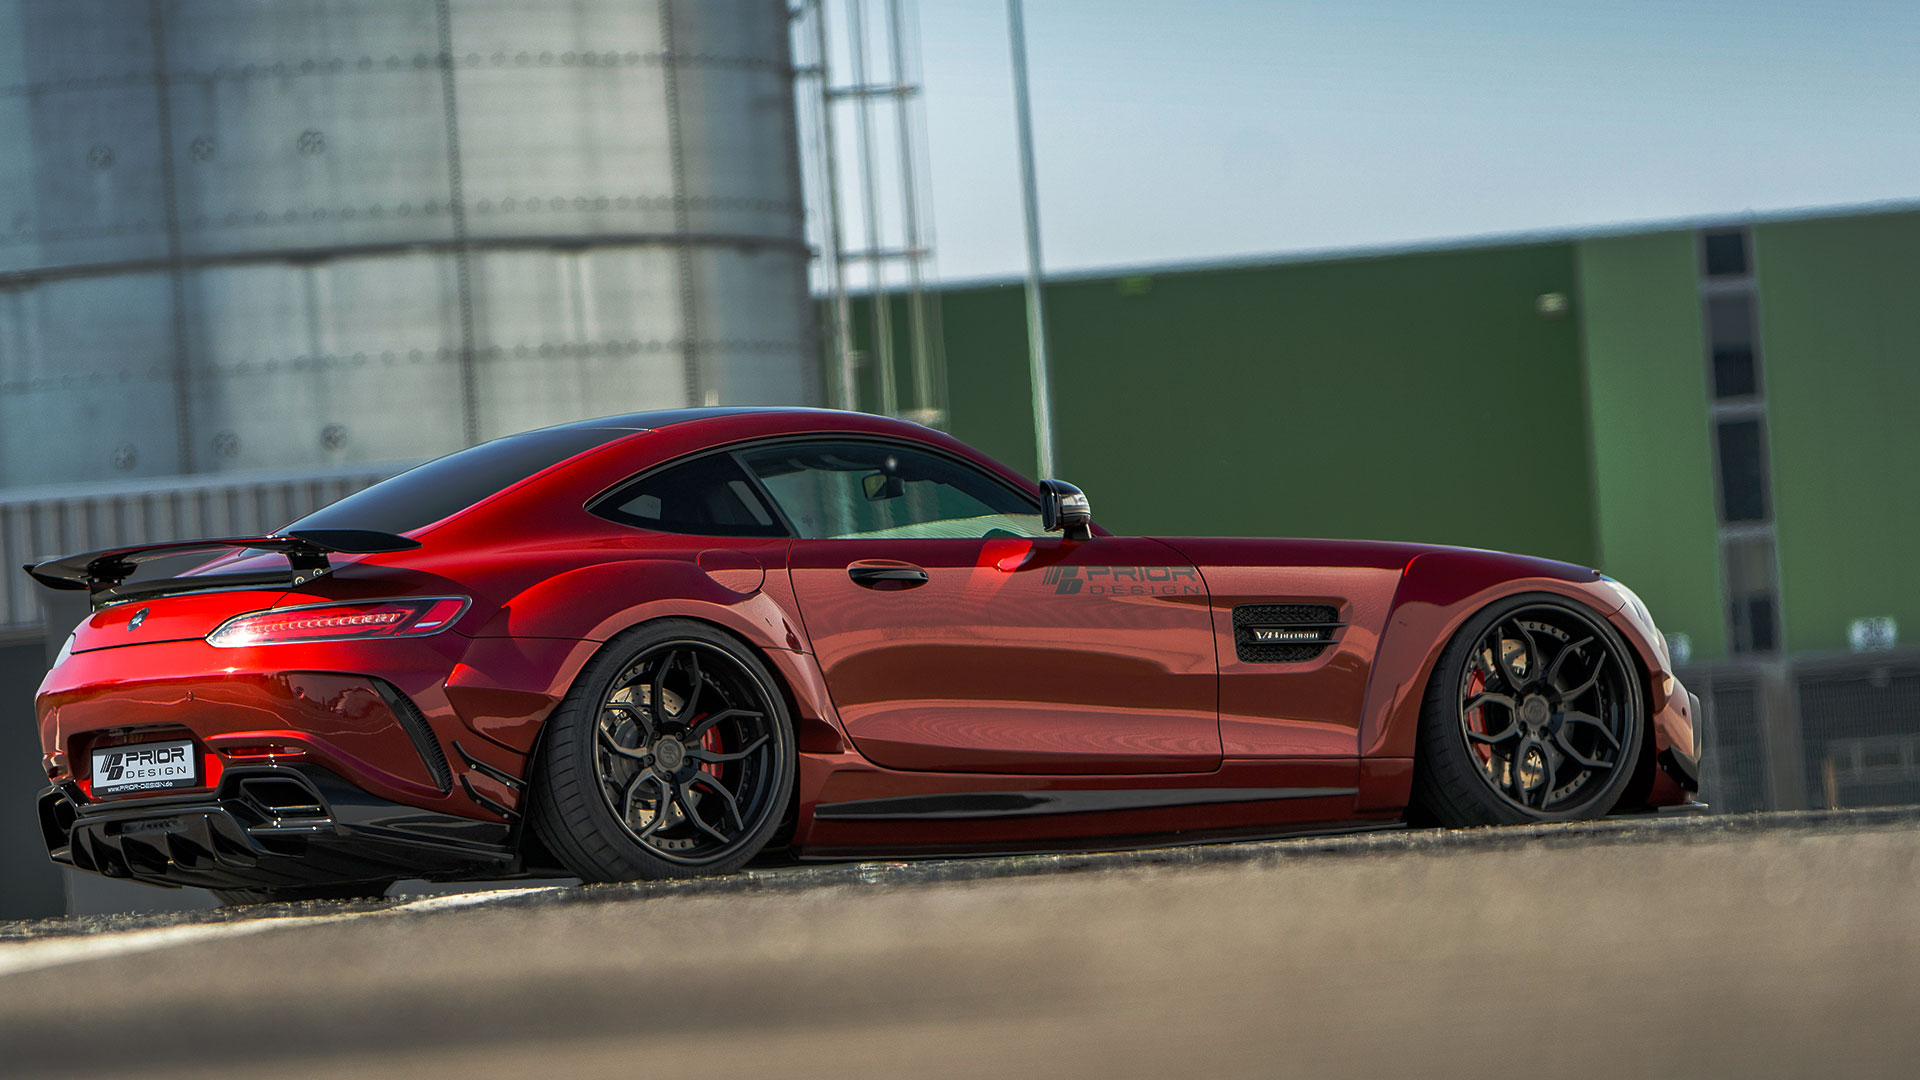 mercedes gt gts gtc amg tuning pd700gtr wide body. Black Bedroom Furniture Sets. Home Design Ideas